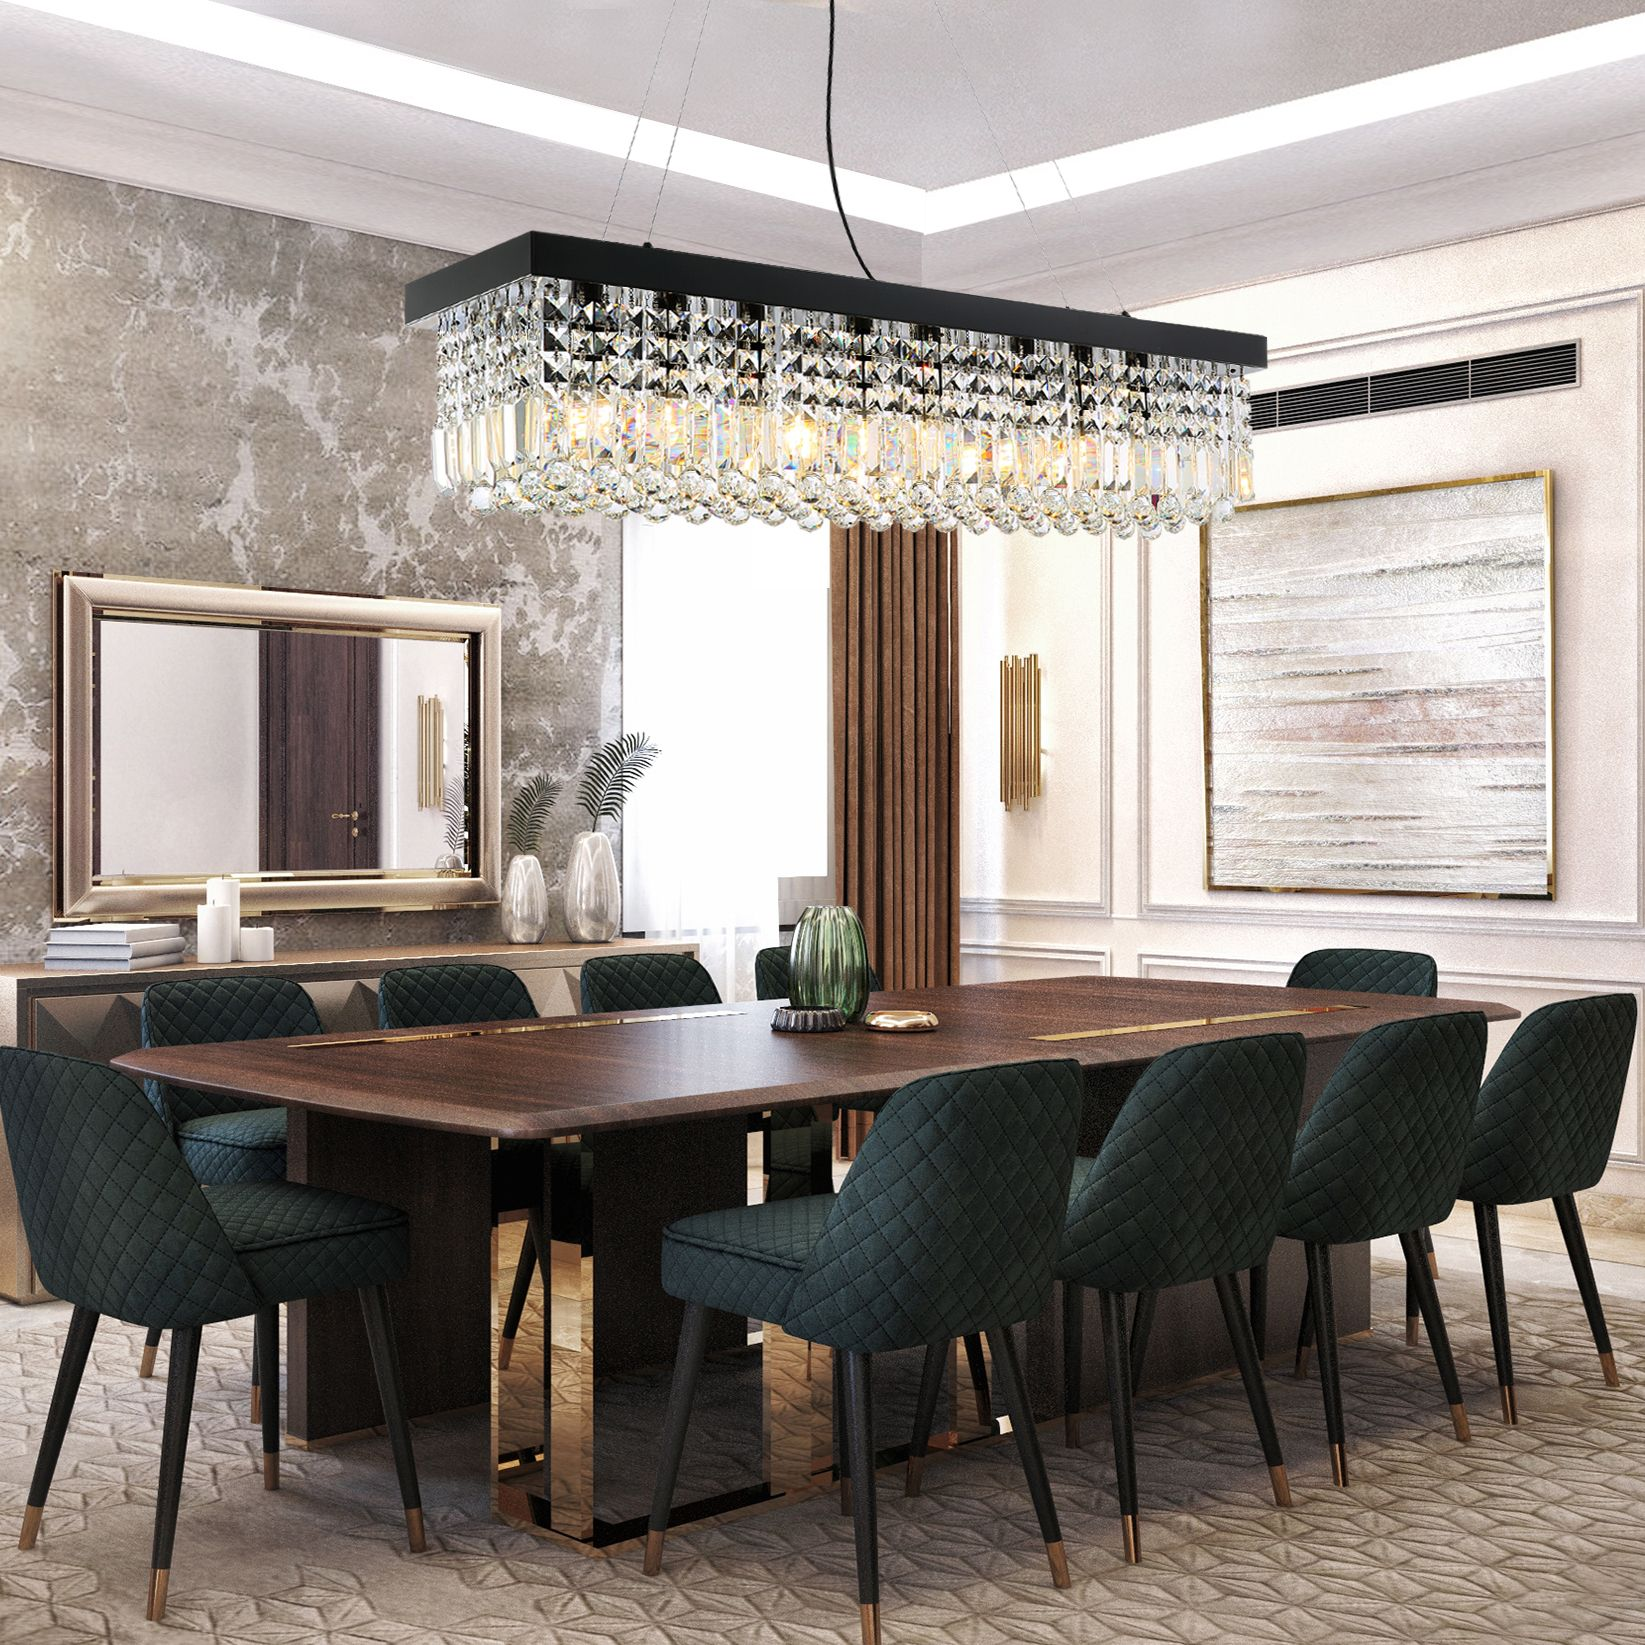 Rectangular Crystal Chandelier Dining Room Crystal Chandeliers Dining Room Chandelier Modern Dining Room Chandelier Crystal Chandelier Dining Room